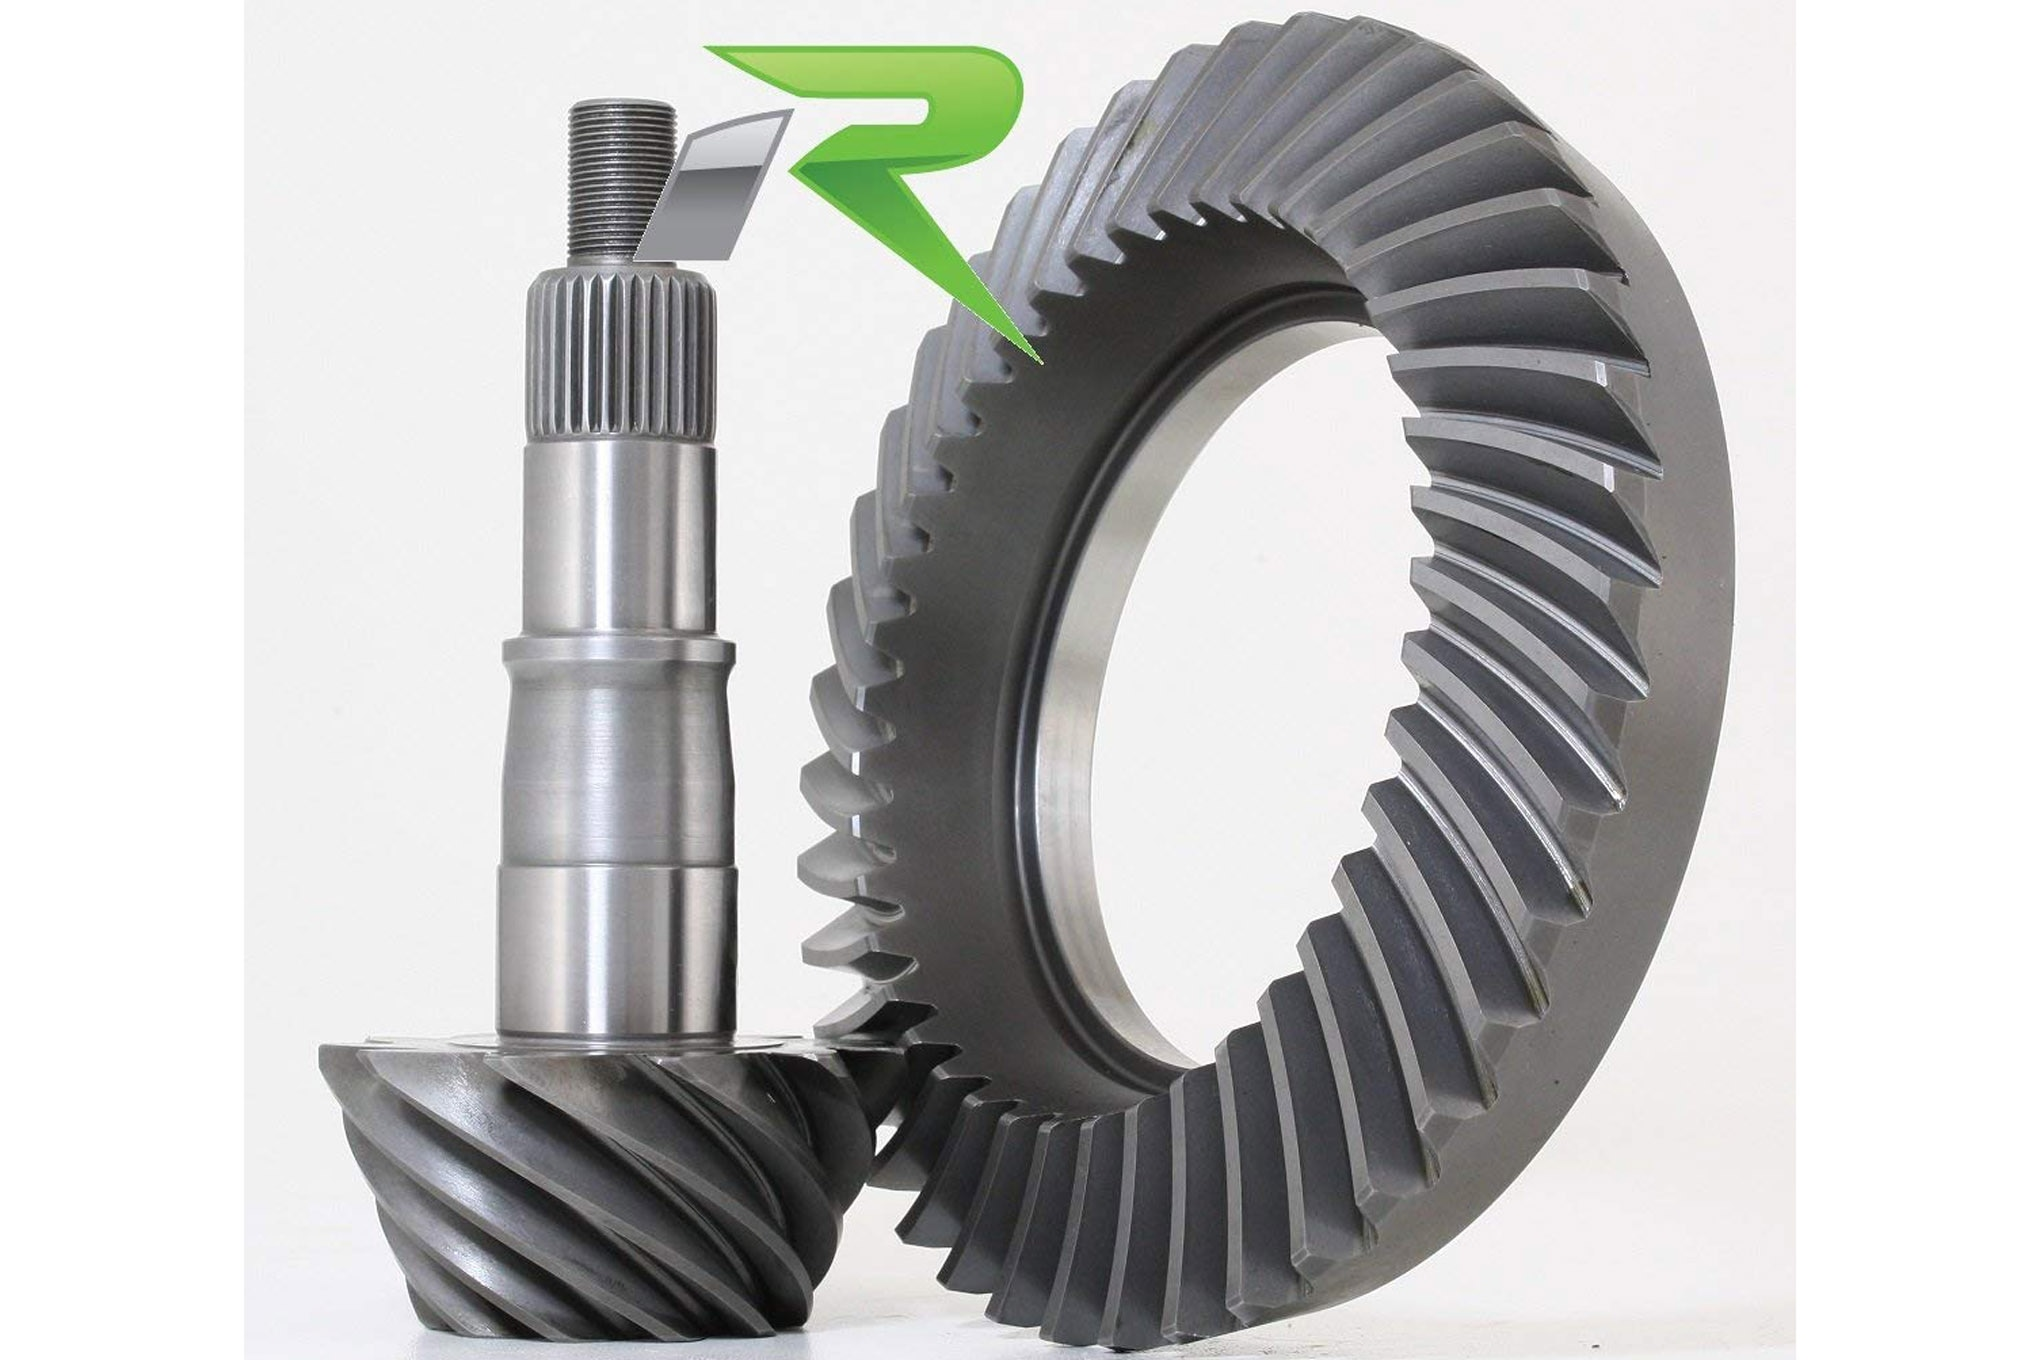 your jeep ford 8.8 ring pinion axle gears revolution 5.13 ratio